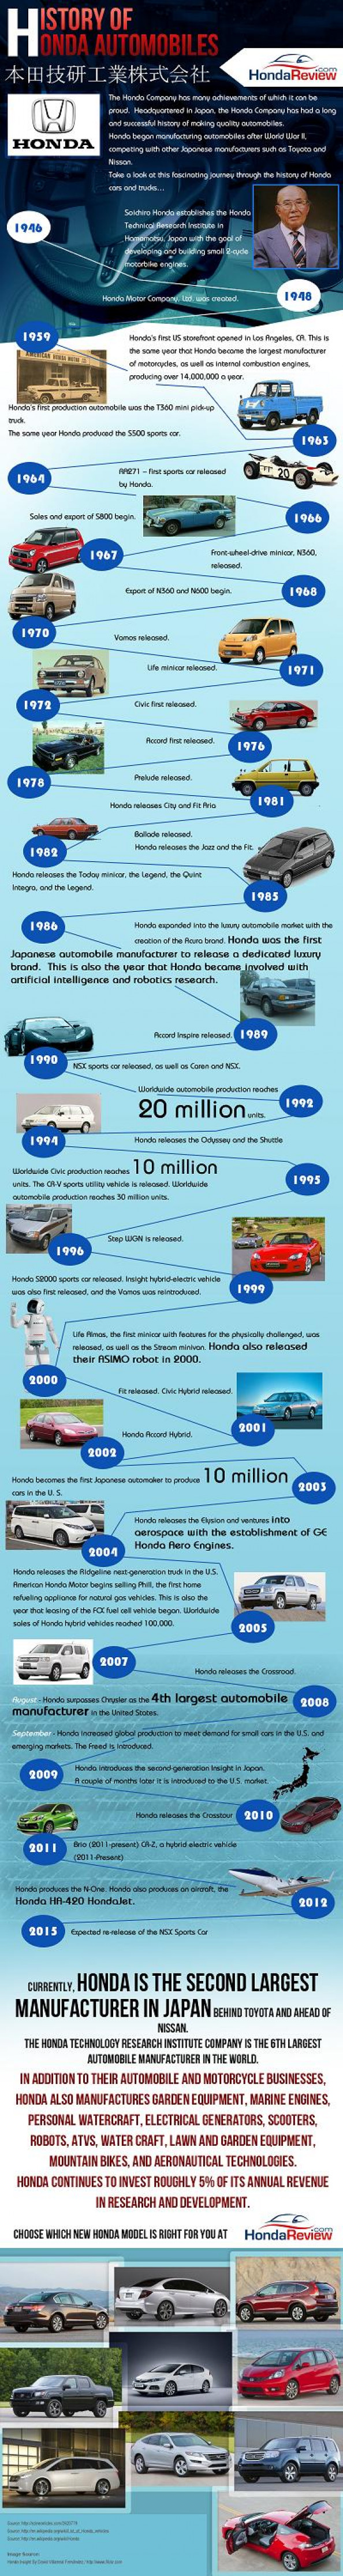 The History of Honda Infographic